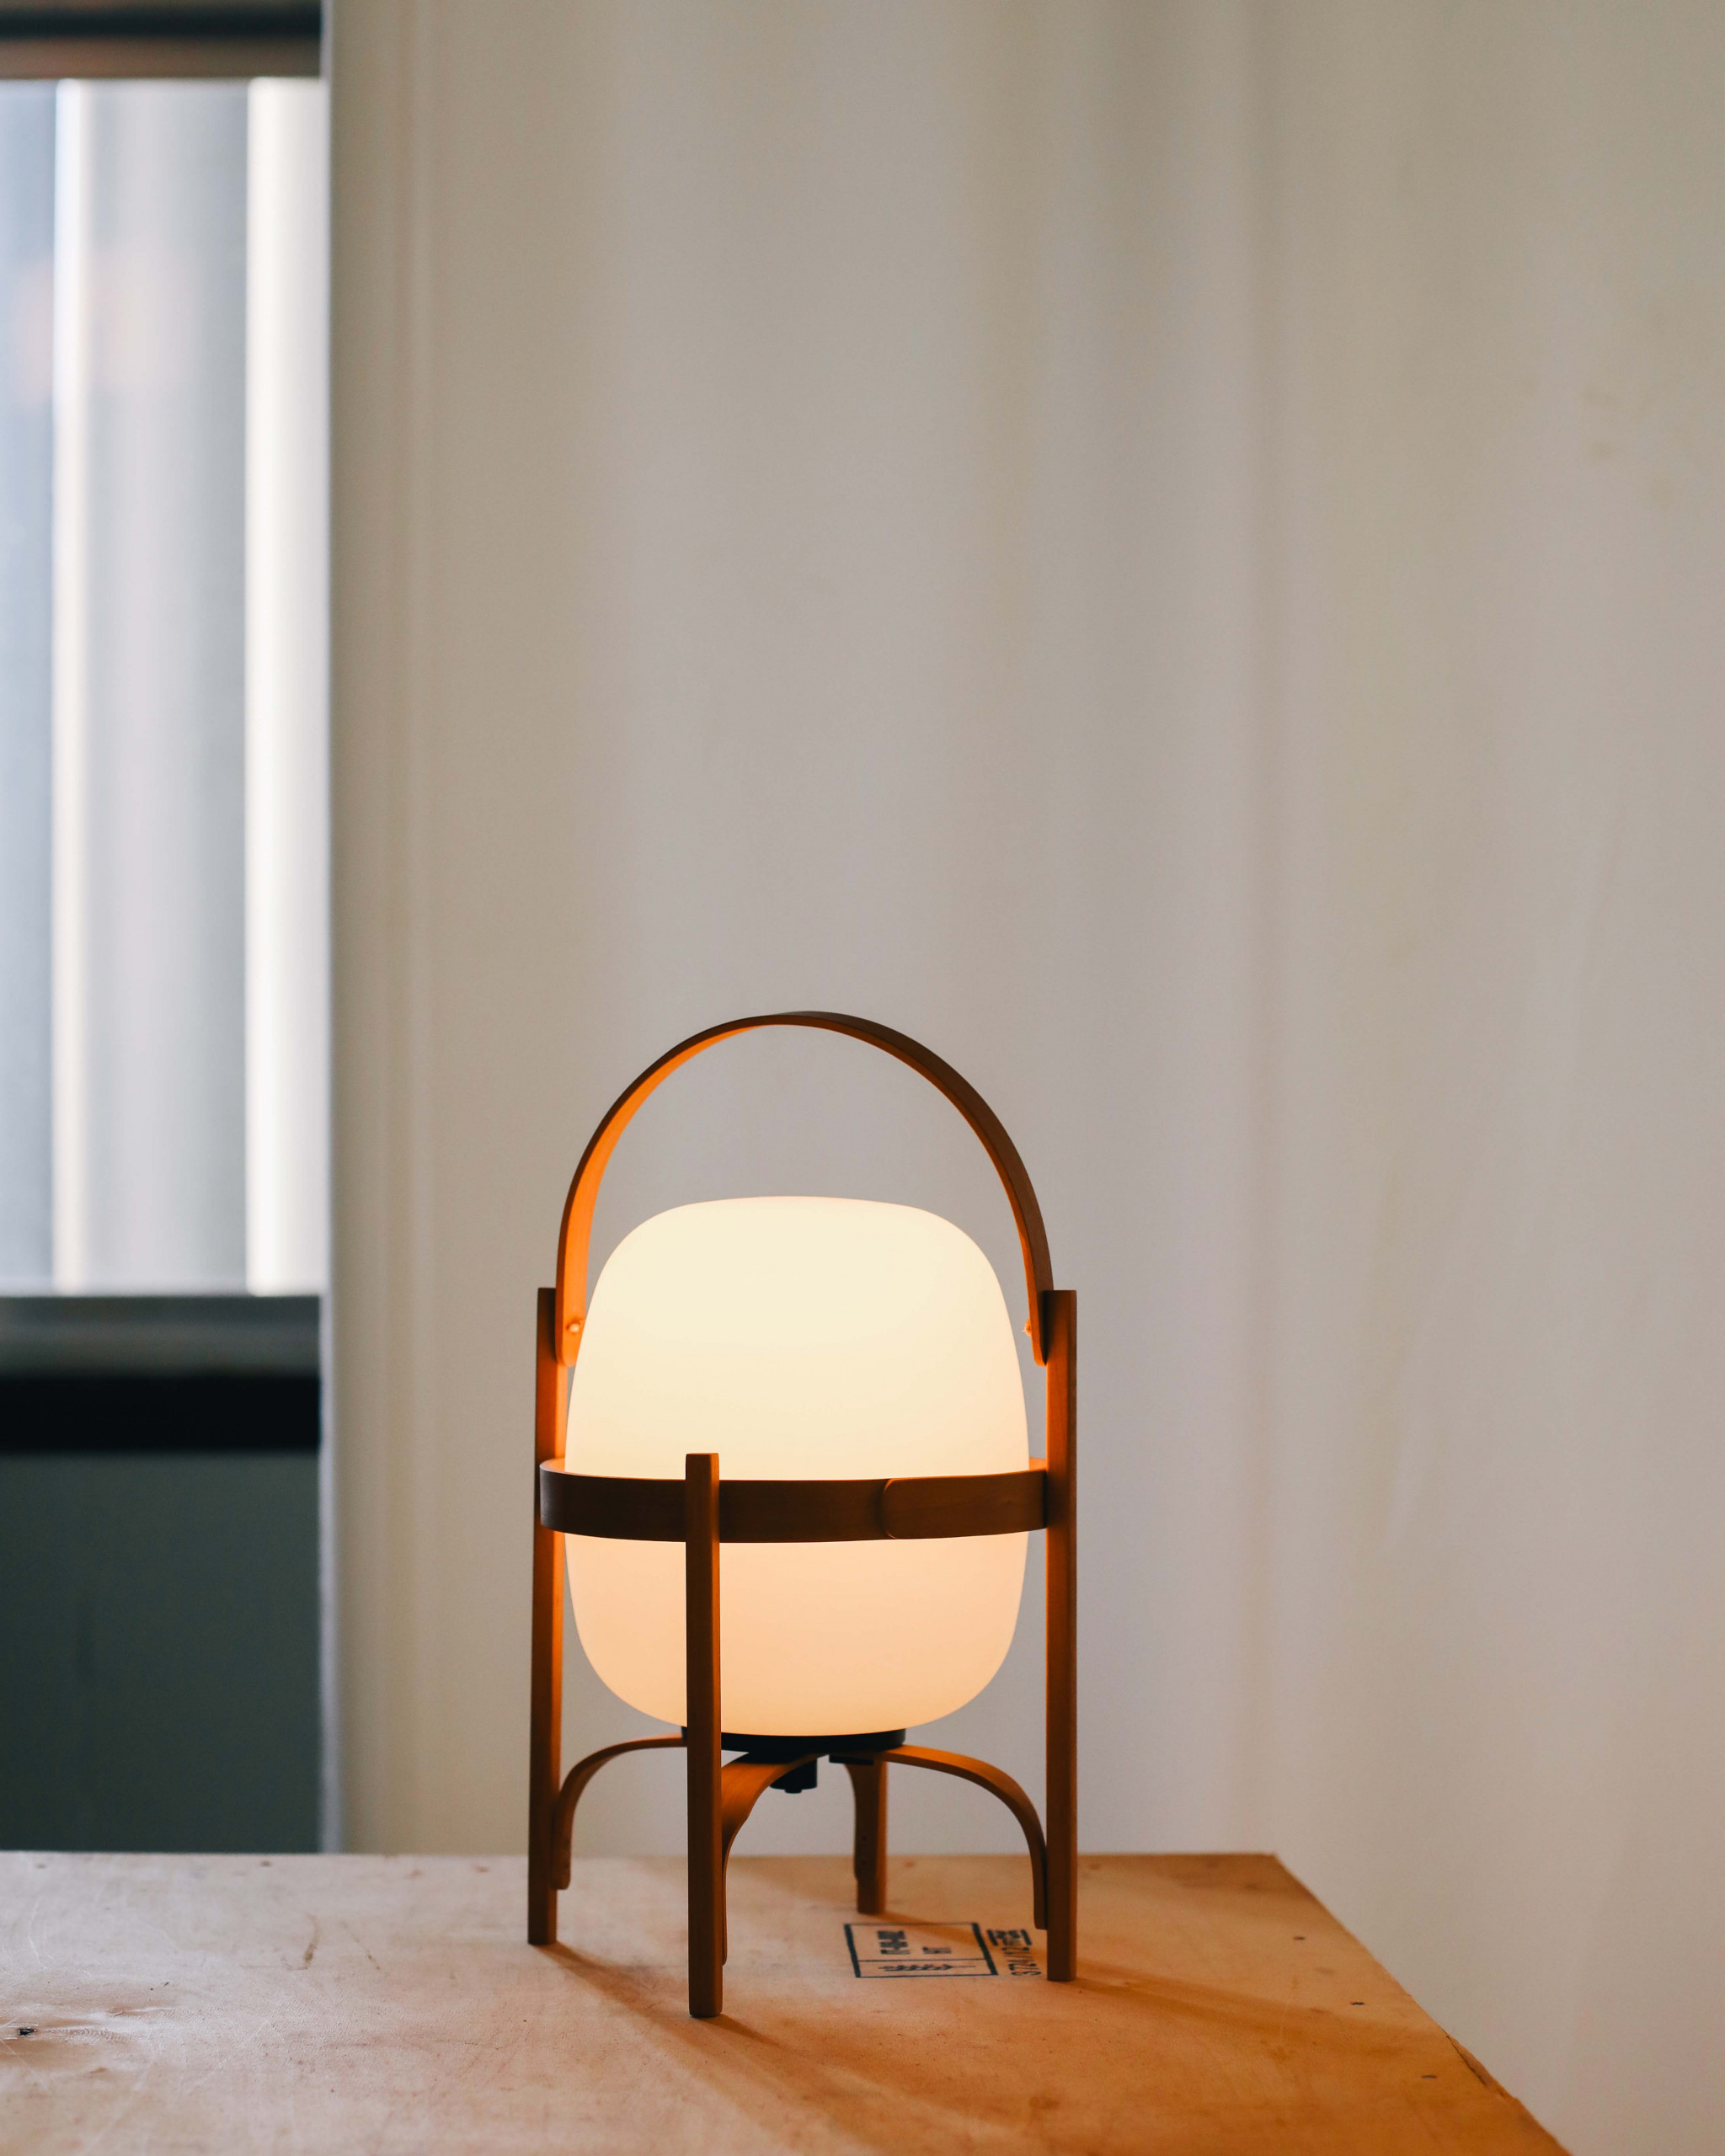 Cestita Bateria Table Lamp - <p>Cestita Batería is the new member of the Cesta family: a portable, cordless version. As with all of Milá's objects, this version champions industrial craftsmanship, by combining functionalism and the legacy of local artisan creation. With this new version, the lamp's features are enhanced with the help of technology. Keeping with the family's warmth and spirit, it features an opal glass shade supported by a beautiful cherry wooden structure. Includes charger. To prevent wood degradation, the lamp should not be left outdoors permanently.</p>    Matter of Stuff